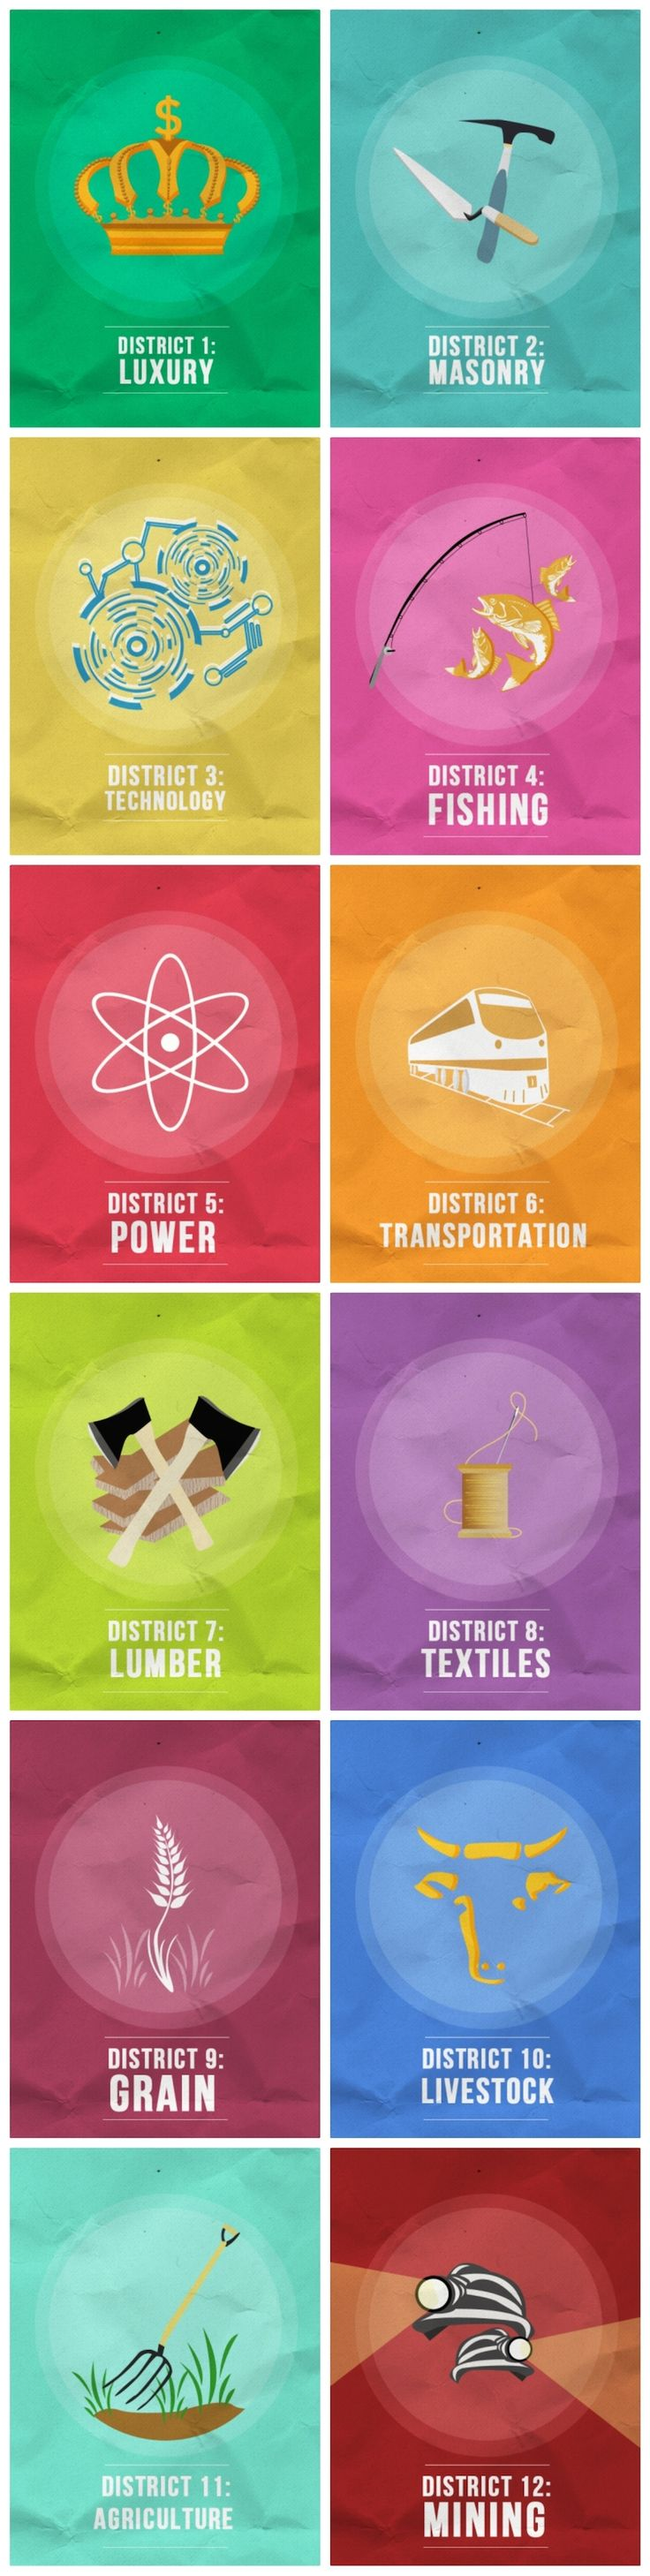 best maps of panem the hunger games images  these mini st posters describe the hunger games districts pictures